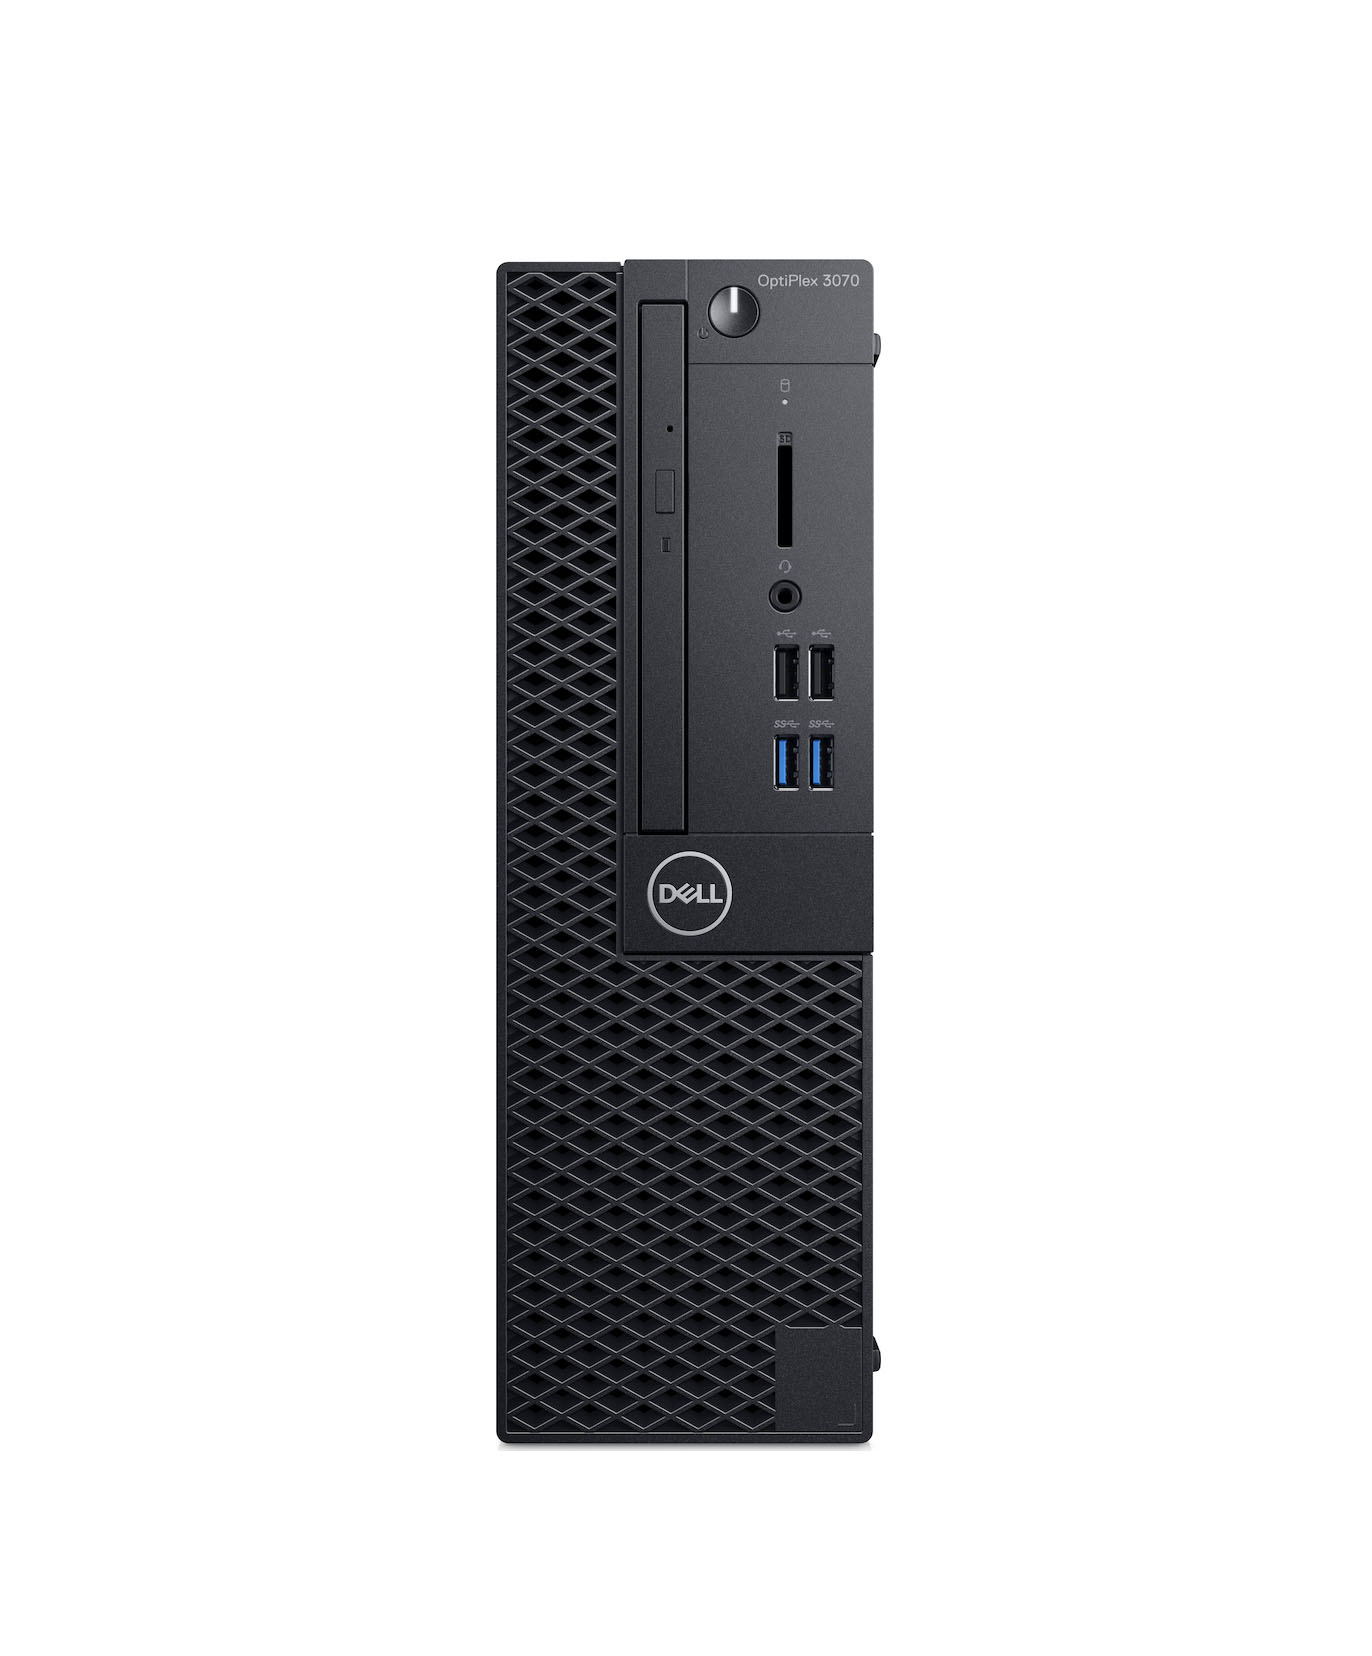 Dell OptiPlex 3070 SFF i5-9500/8GB/256GB/W10 DFF7J PC-System